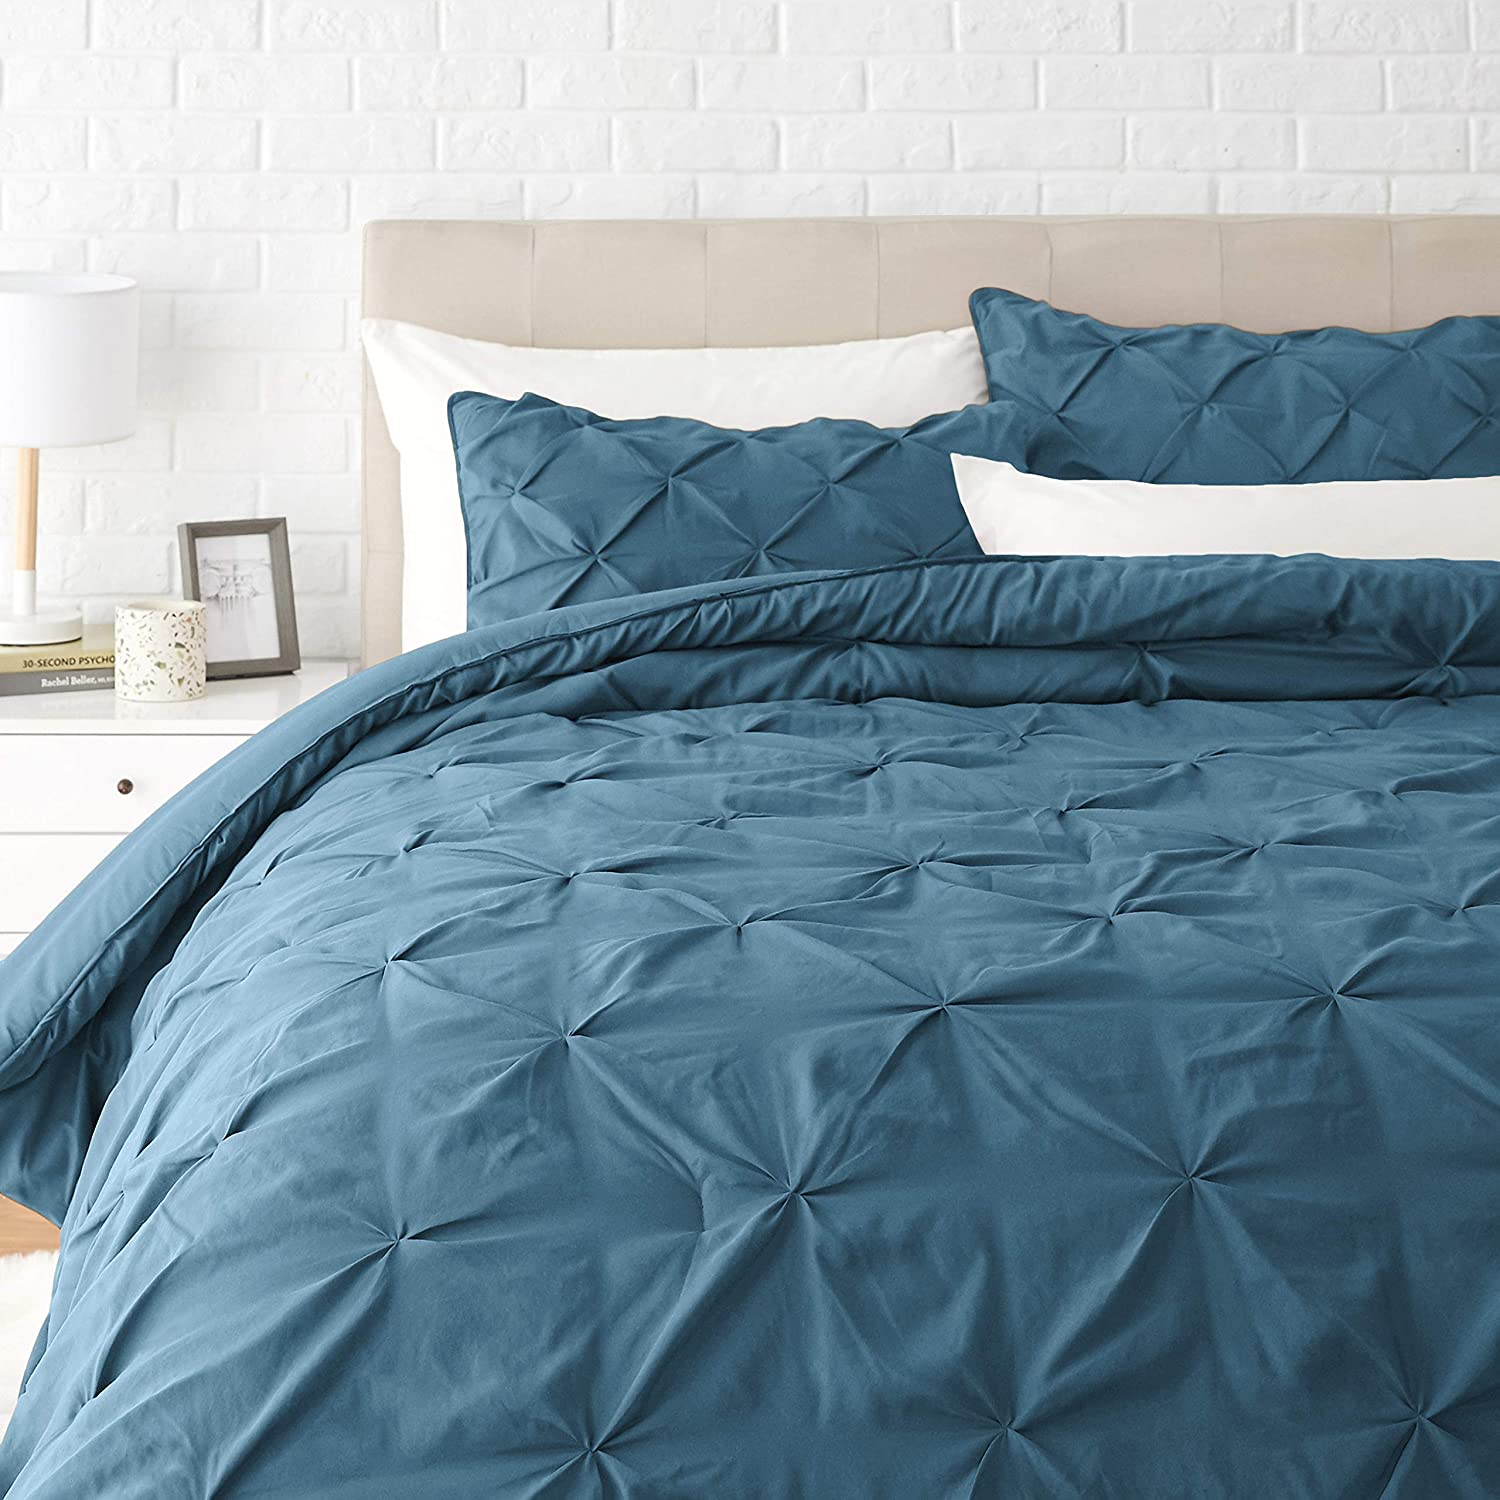 Amazon Basics Pinch Pleat Down-Alternative Comforter Bedding Set - King, Dark Teal